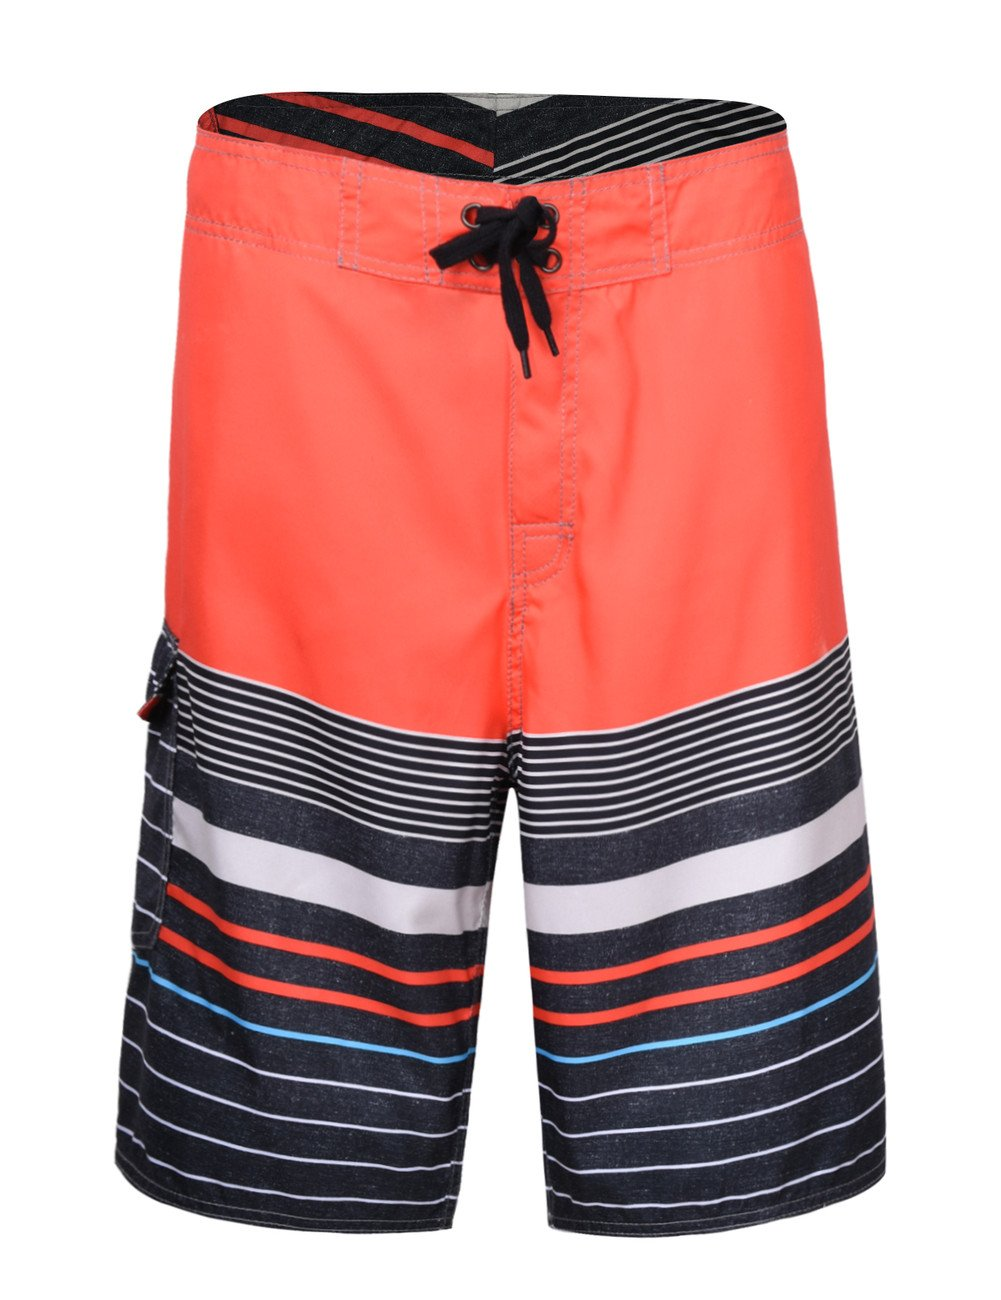 NONWE Men's Quick Dry Swim Trunks Colorful Stripe Beach Short with Mesh Lining 12780-40 by Nonwe